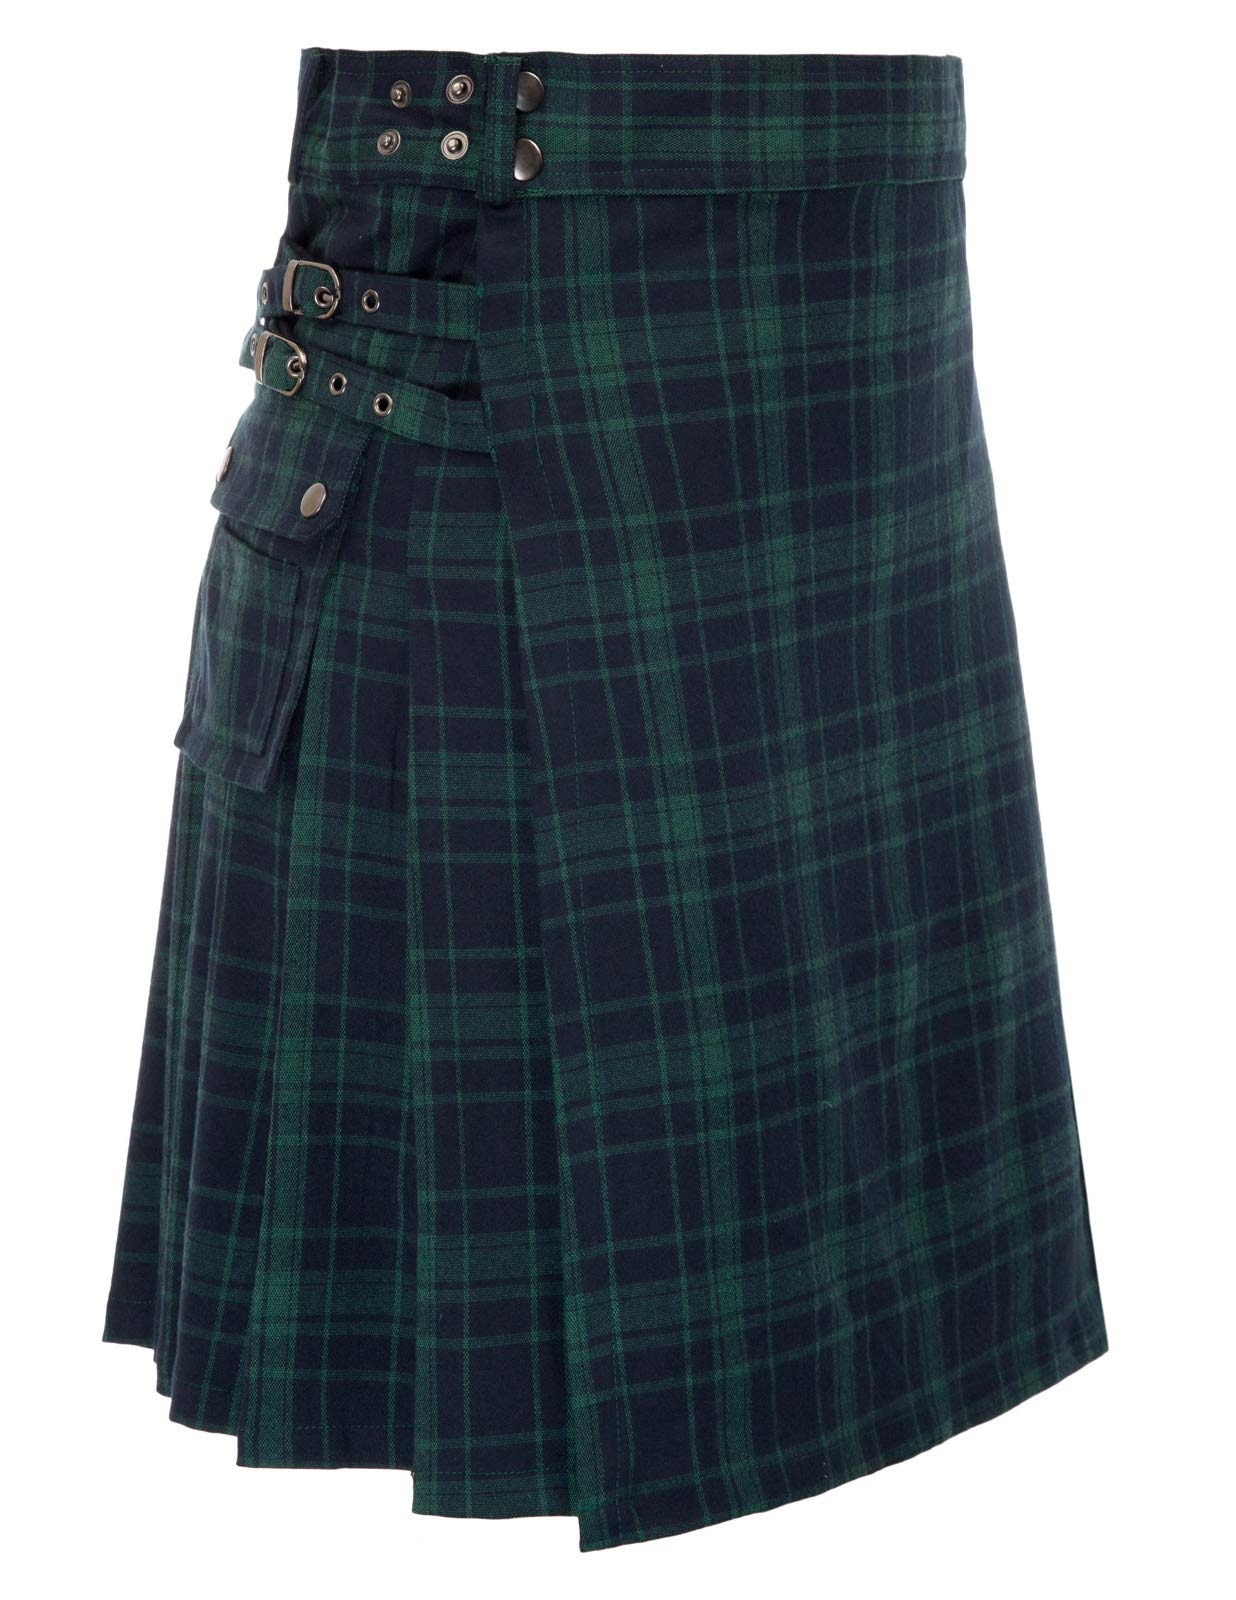 SCARLET DARKNESS Men's Scottish Highlander Tartan Utility Kilt Black Watch XL by SCARLET DARKNESS